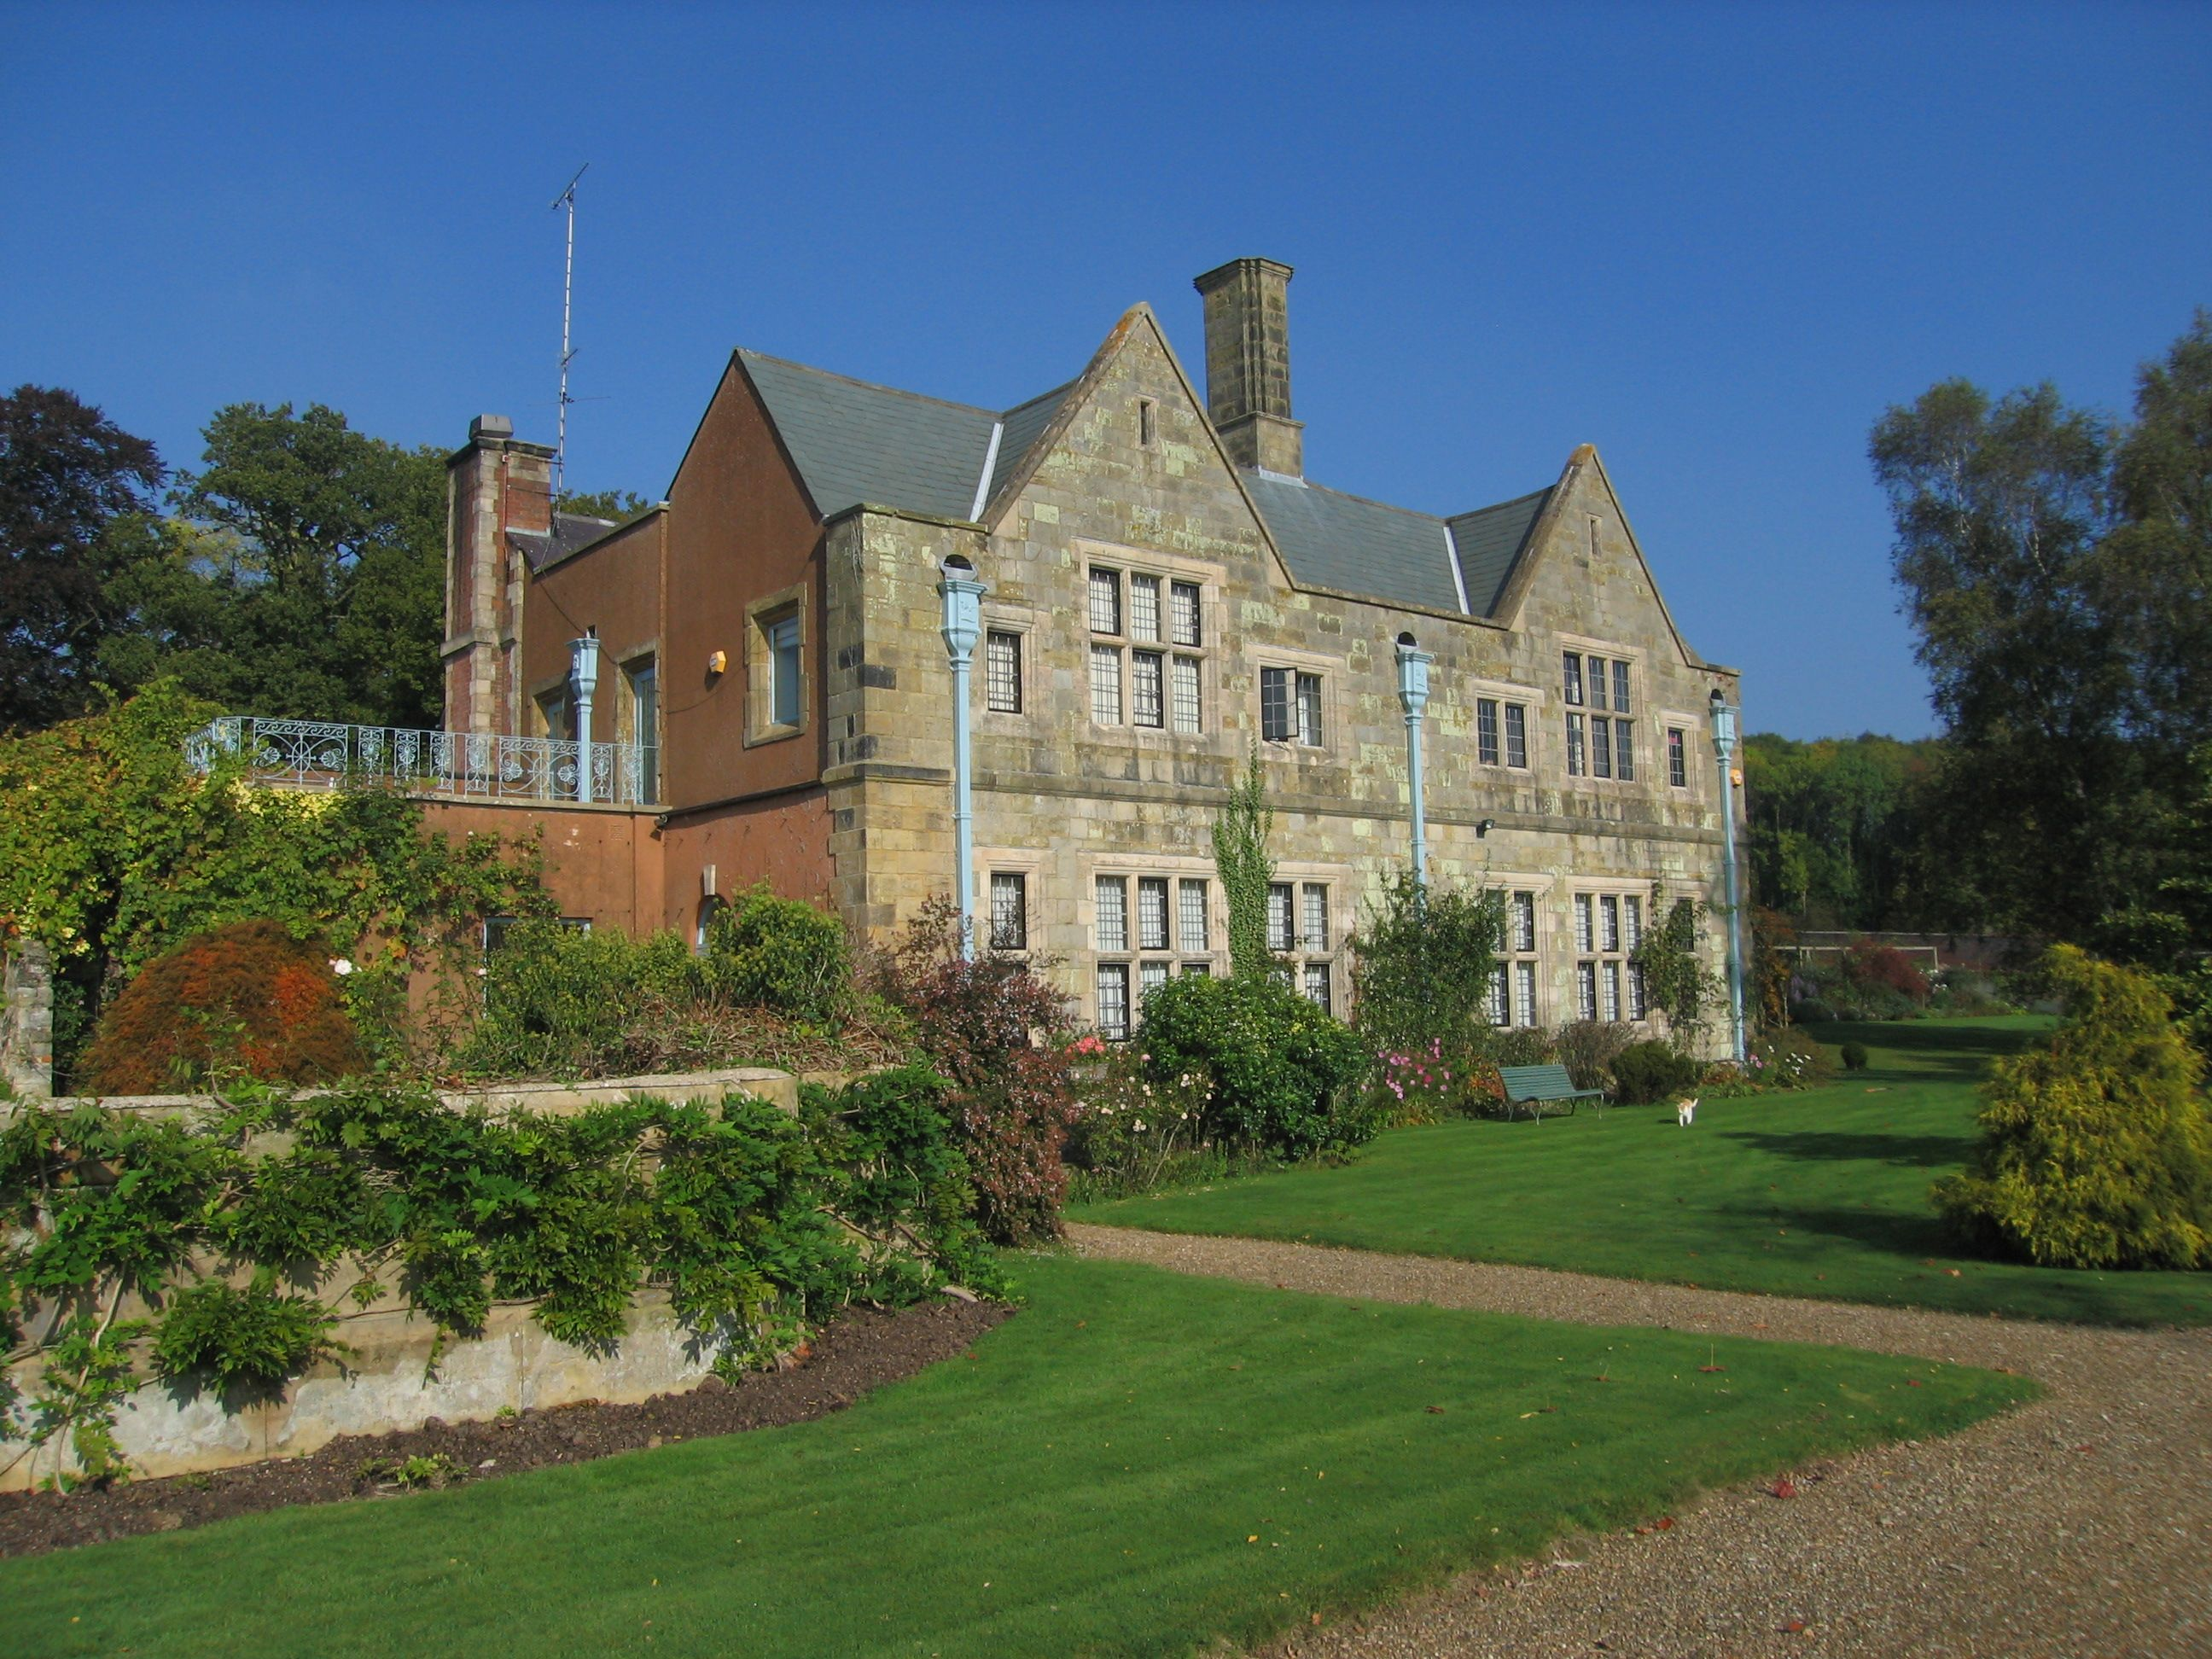 Another Beautiful Country House Wedding Venue Falconhurst In Kent Perfect For Marquee Receptions With Amazing Views